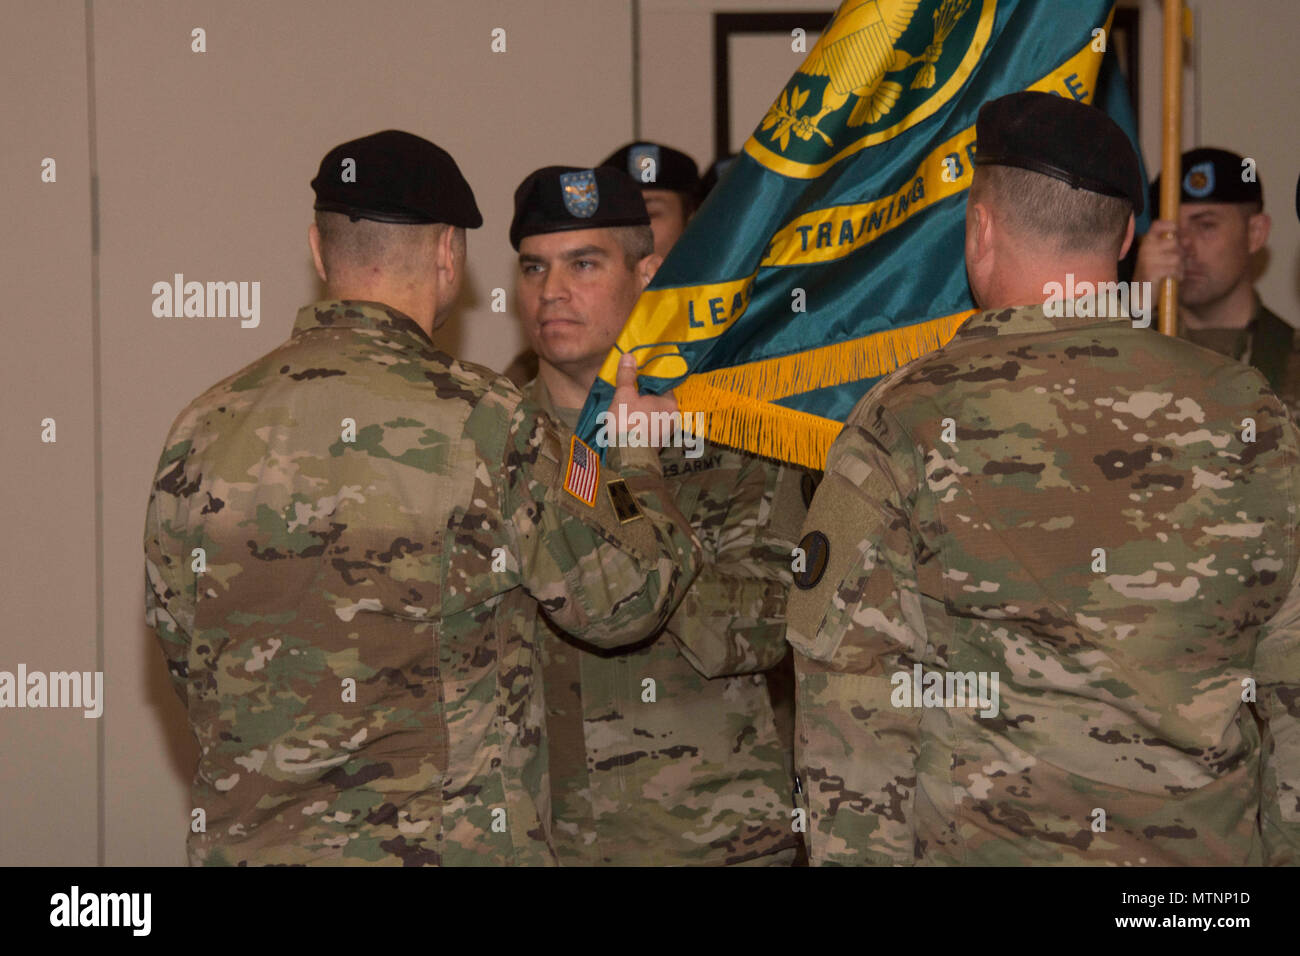 Col. Fernando Guadalupe Jr., commander of the Leader Training Brigade, receives the unit colors from Maj. Gen. Anthony C. Funkhouser, Center of Initial Military Training commander during a change of command ceremony Jan. 6 at the Officers Club on Fort Jackson. Guadalupe took command of the unit from Col. Michael Mammay who is retiring. (U.S. Army photo by Robert Timmons, Fort Jackson Public Affairs/Released) Stock Photo